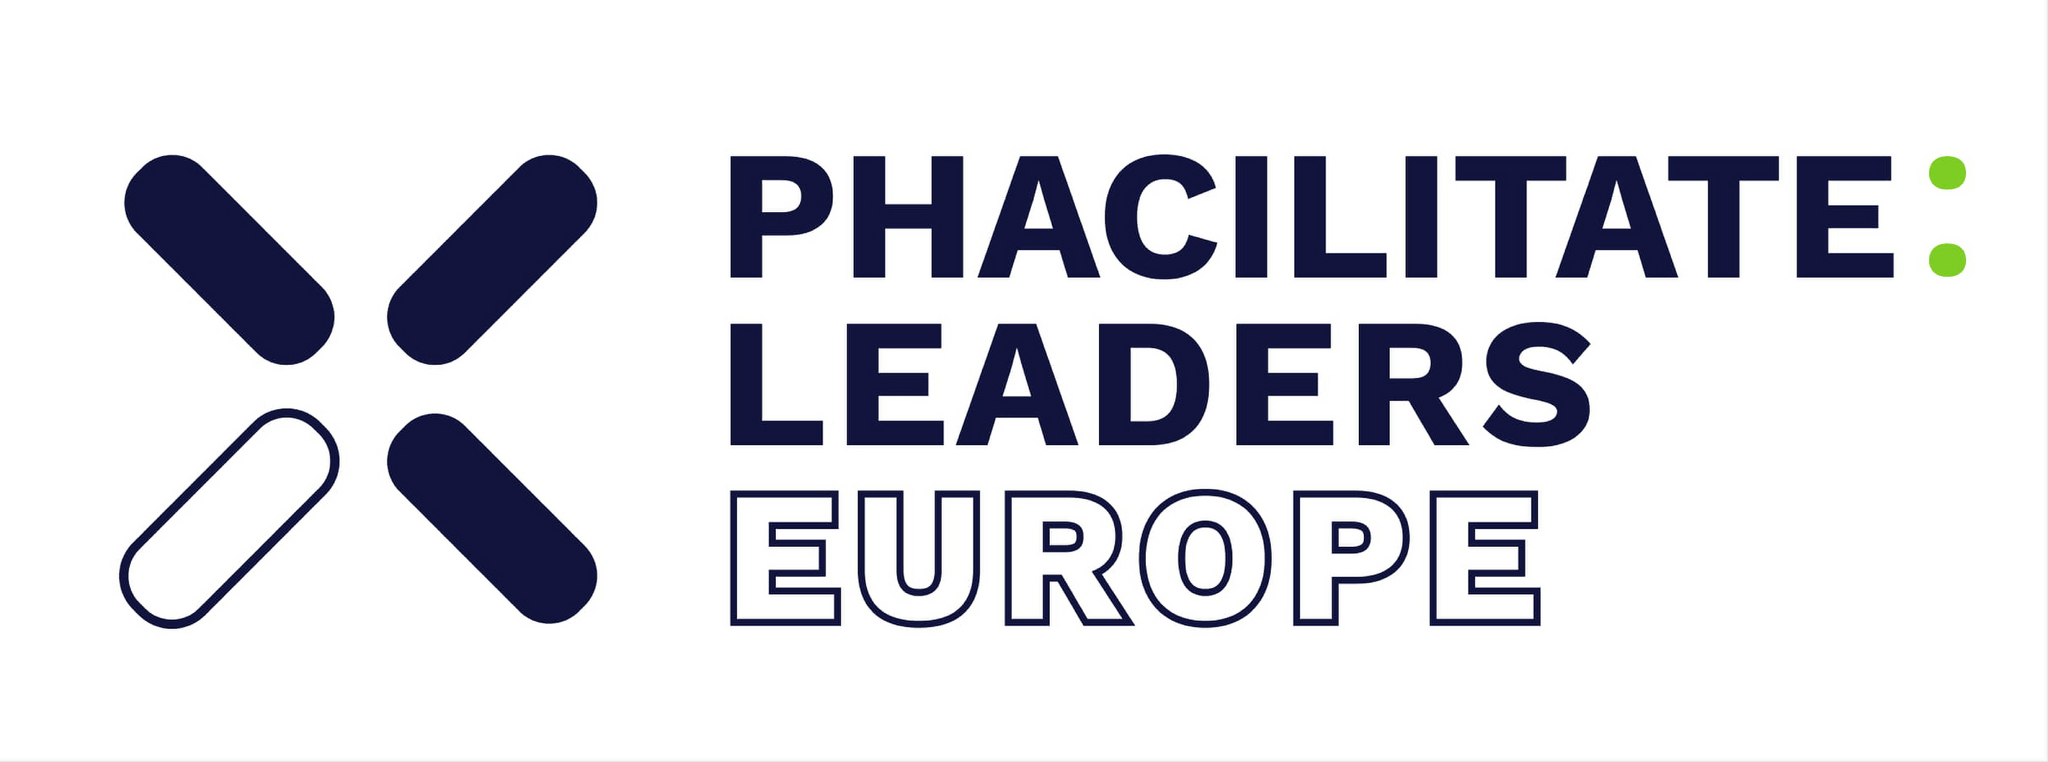 Phacilitate Leaders Europe 2018